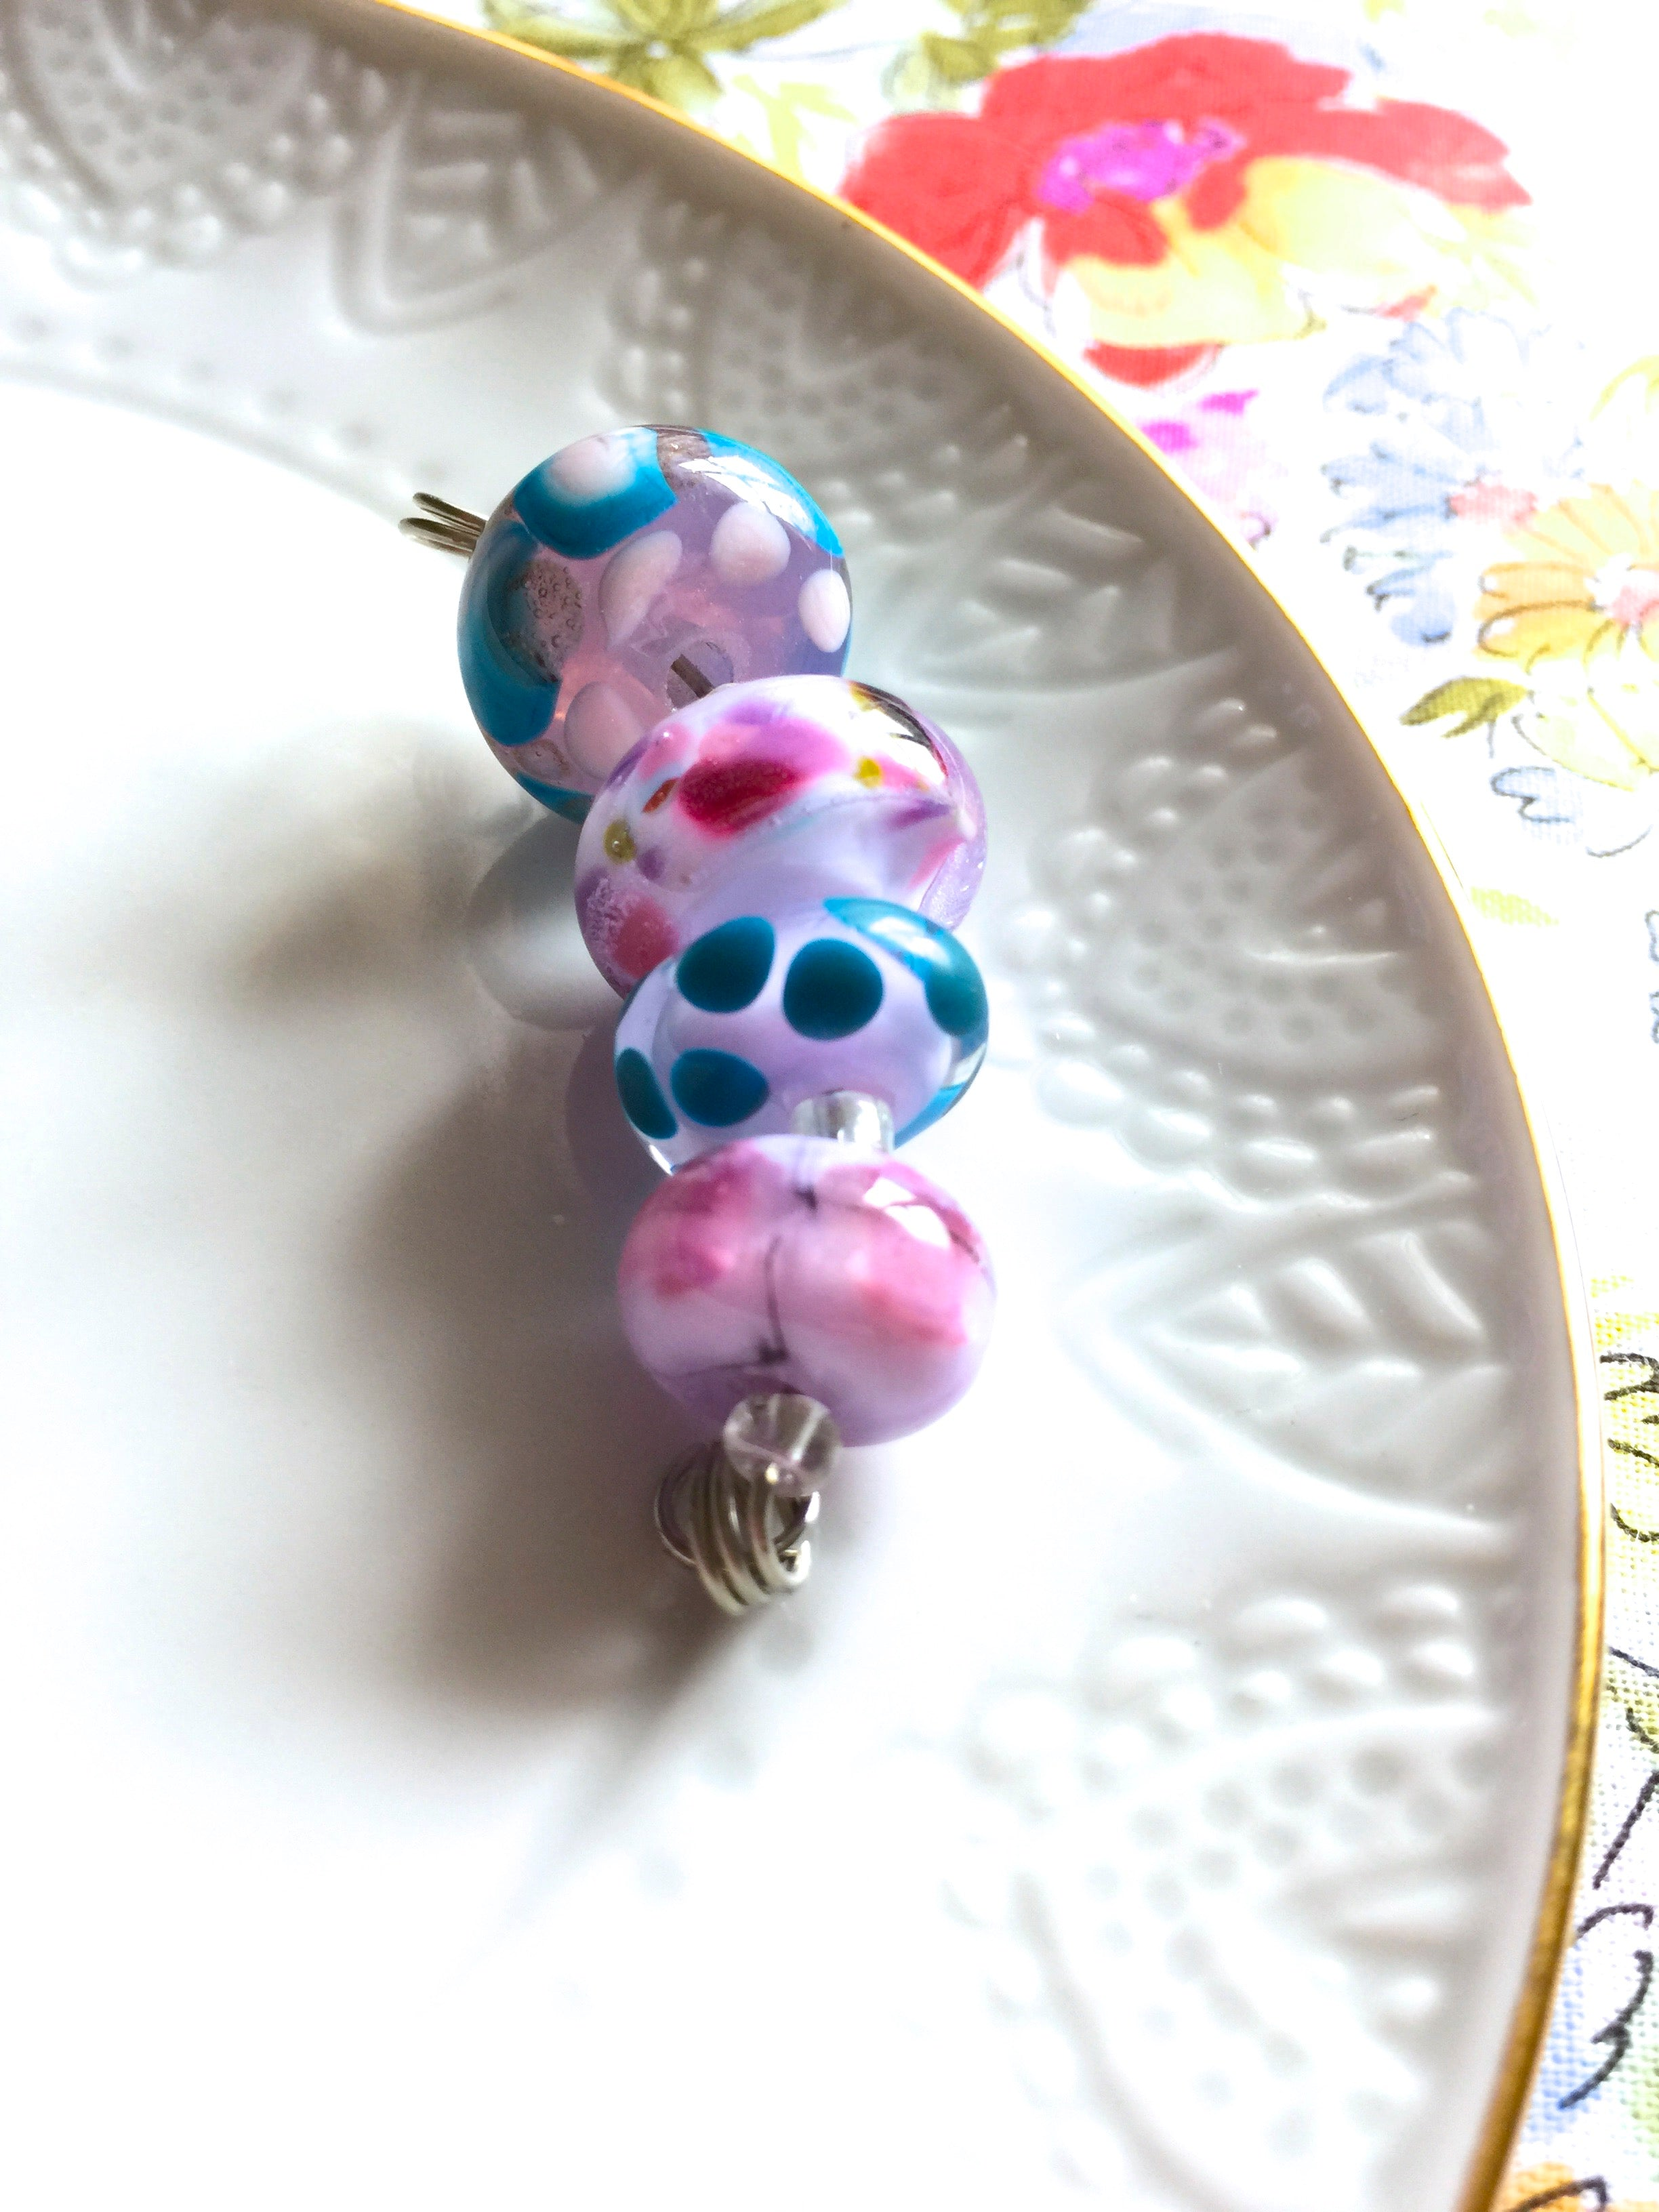 Set of 4 Handcrafted Lampwork Glass Beads in shades of Pink, Blues, Violet with spots and swirls.